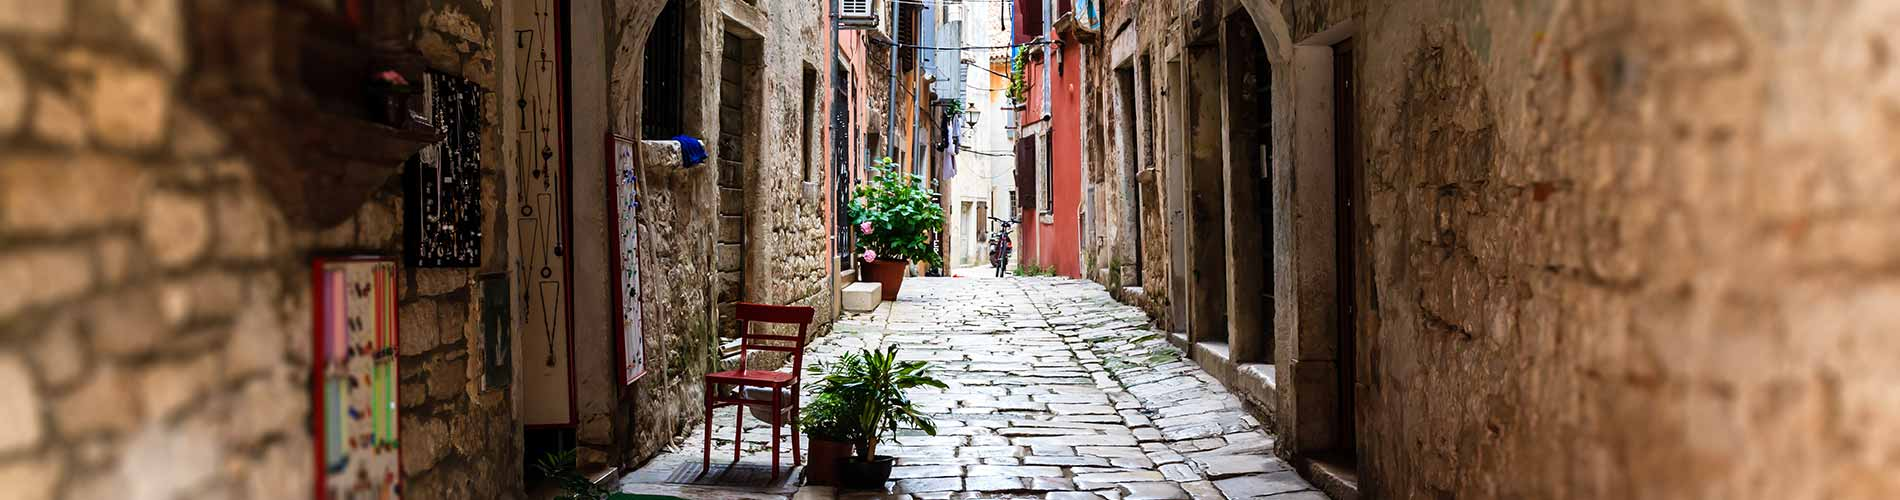 Narrow Archway in the City of Rovinj, Croatia.jpg